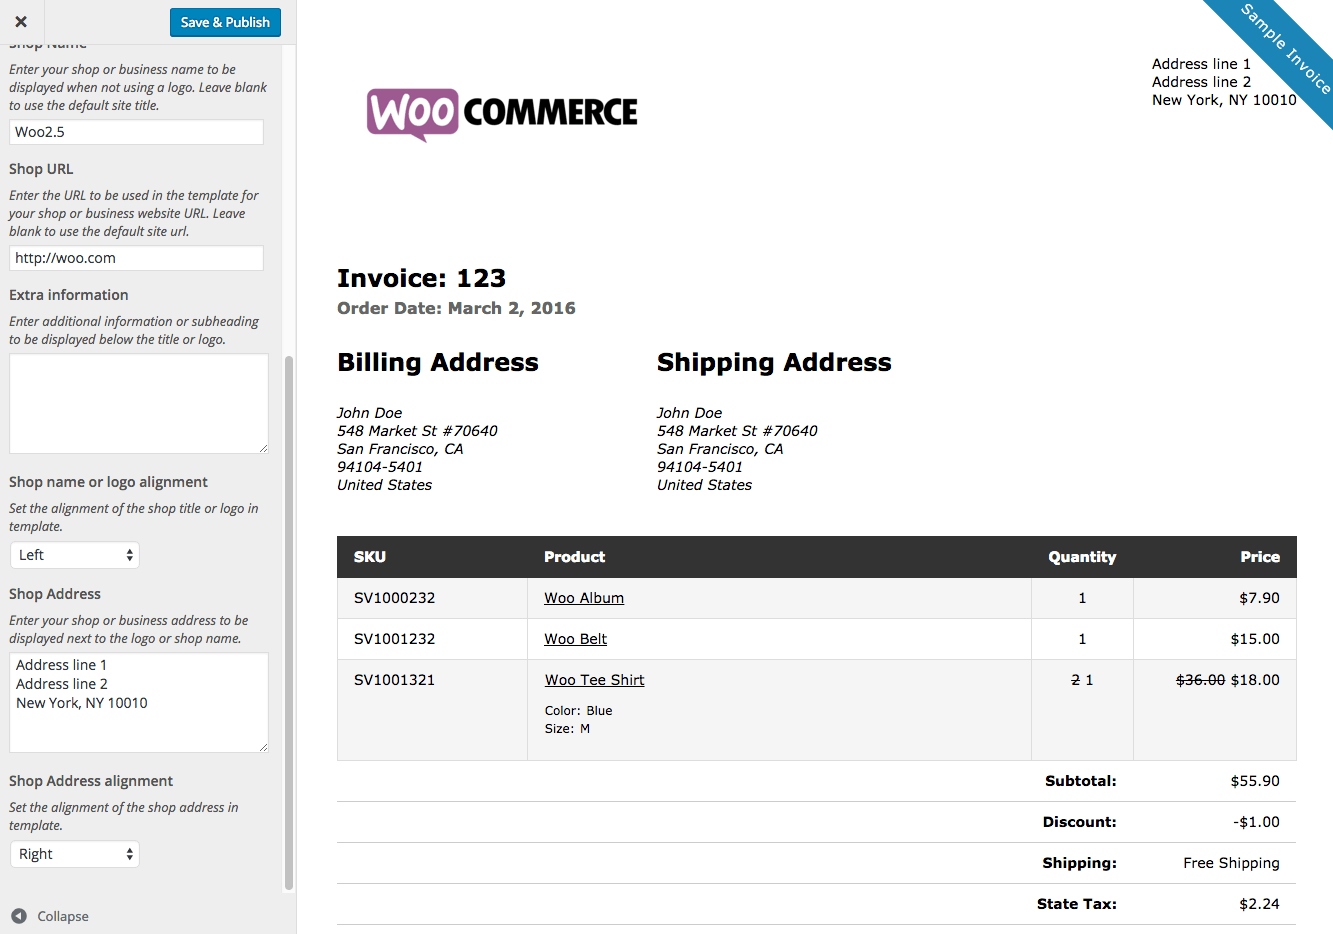 Usdgus  Winsome Print Invoices Amp Packing Lists  Woocommerce With Entrancing Woocommerce Print Invoices  Packing Lists Customizer With Cute Forwarders Cargo Receipt Also Custom Business Receipts In Addition Cab Receipt Generator And Receipt Roll As Well As Ohio Gross Receipts Tax Additionally Usmc Cif Gear Receipt From Woocommercecom With Usdgus  Entrancing Print Invoices Amp Packing Lists  Woocommerce With Cute Woocommerce Print Invoices  Packing Lists Customizer And Winsome Forwarders Cargo Receipt Also Custom Business Receipts In Addition Cab Receipt Generator From Woocommercecom